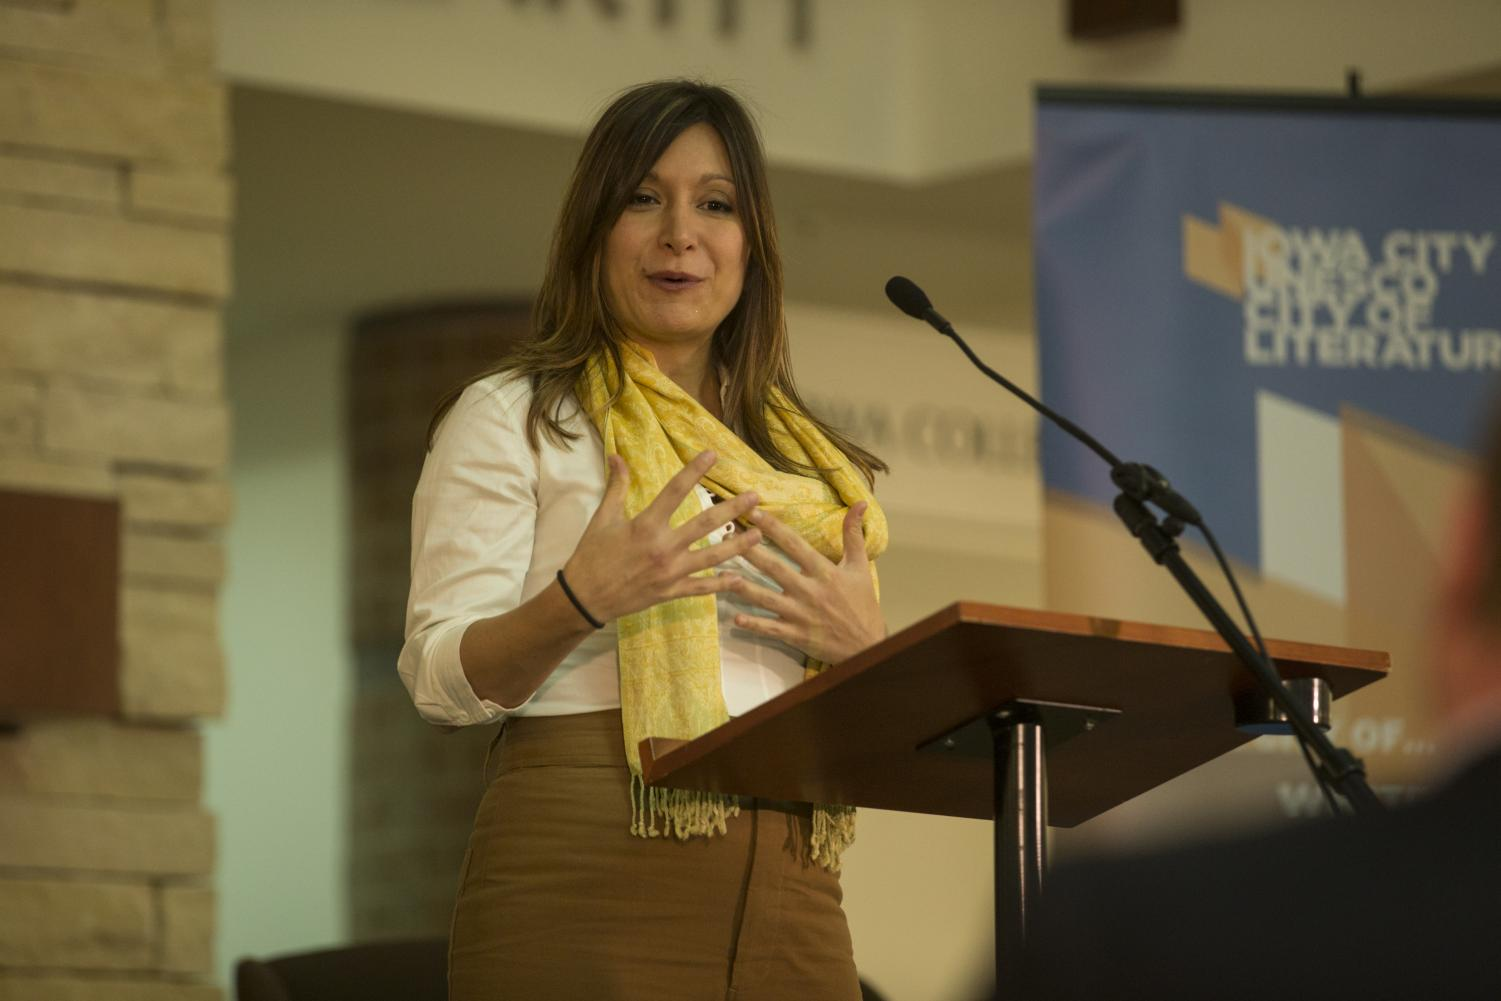 Dina Nayeri, graduate of the Iowa Writers' Workshop, addresses the audience as she accepts the 2018 Paul Engle Prize at the Coralville Public Library on Oct. 4, 2018. Nayeri receives this award for her novel Refuge, which details her experience as a refugee and the experiences of many others.